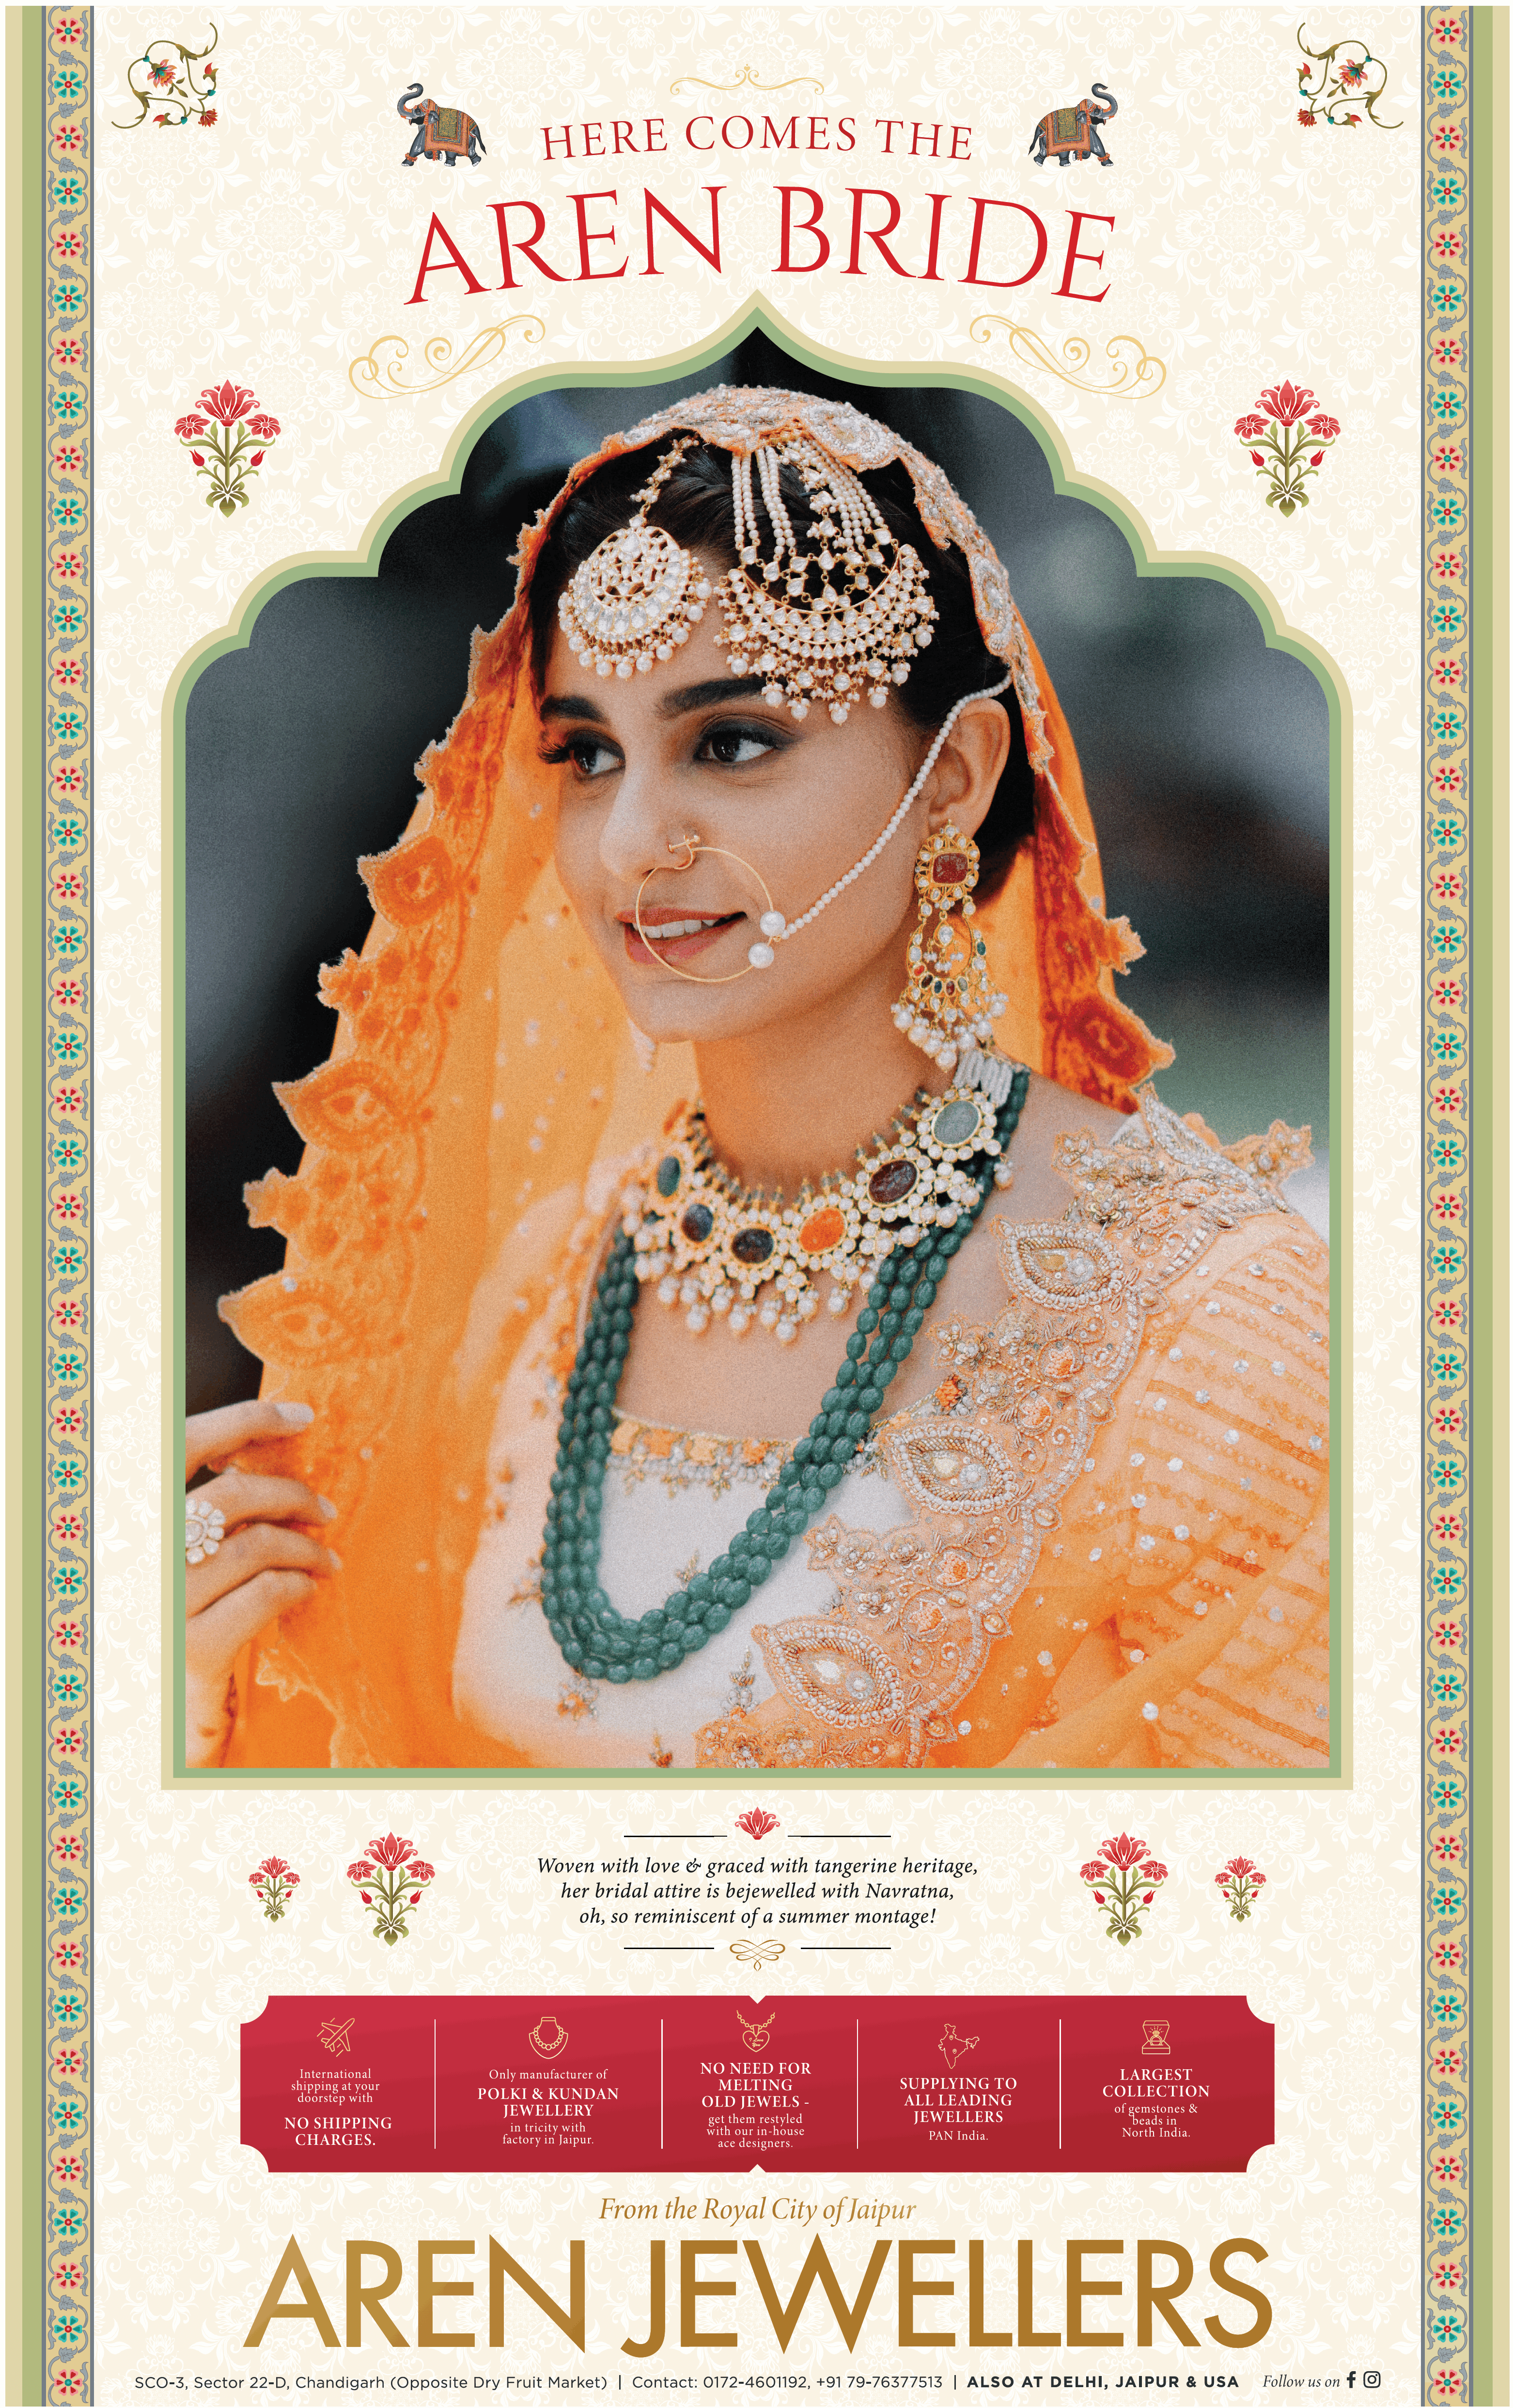 aren-jewellers-here-comes-the-aren-bride-ad-toi-chandigarh-11-7-2021